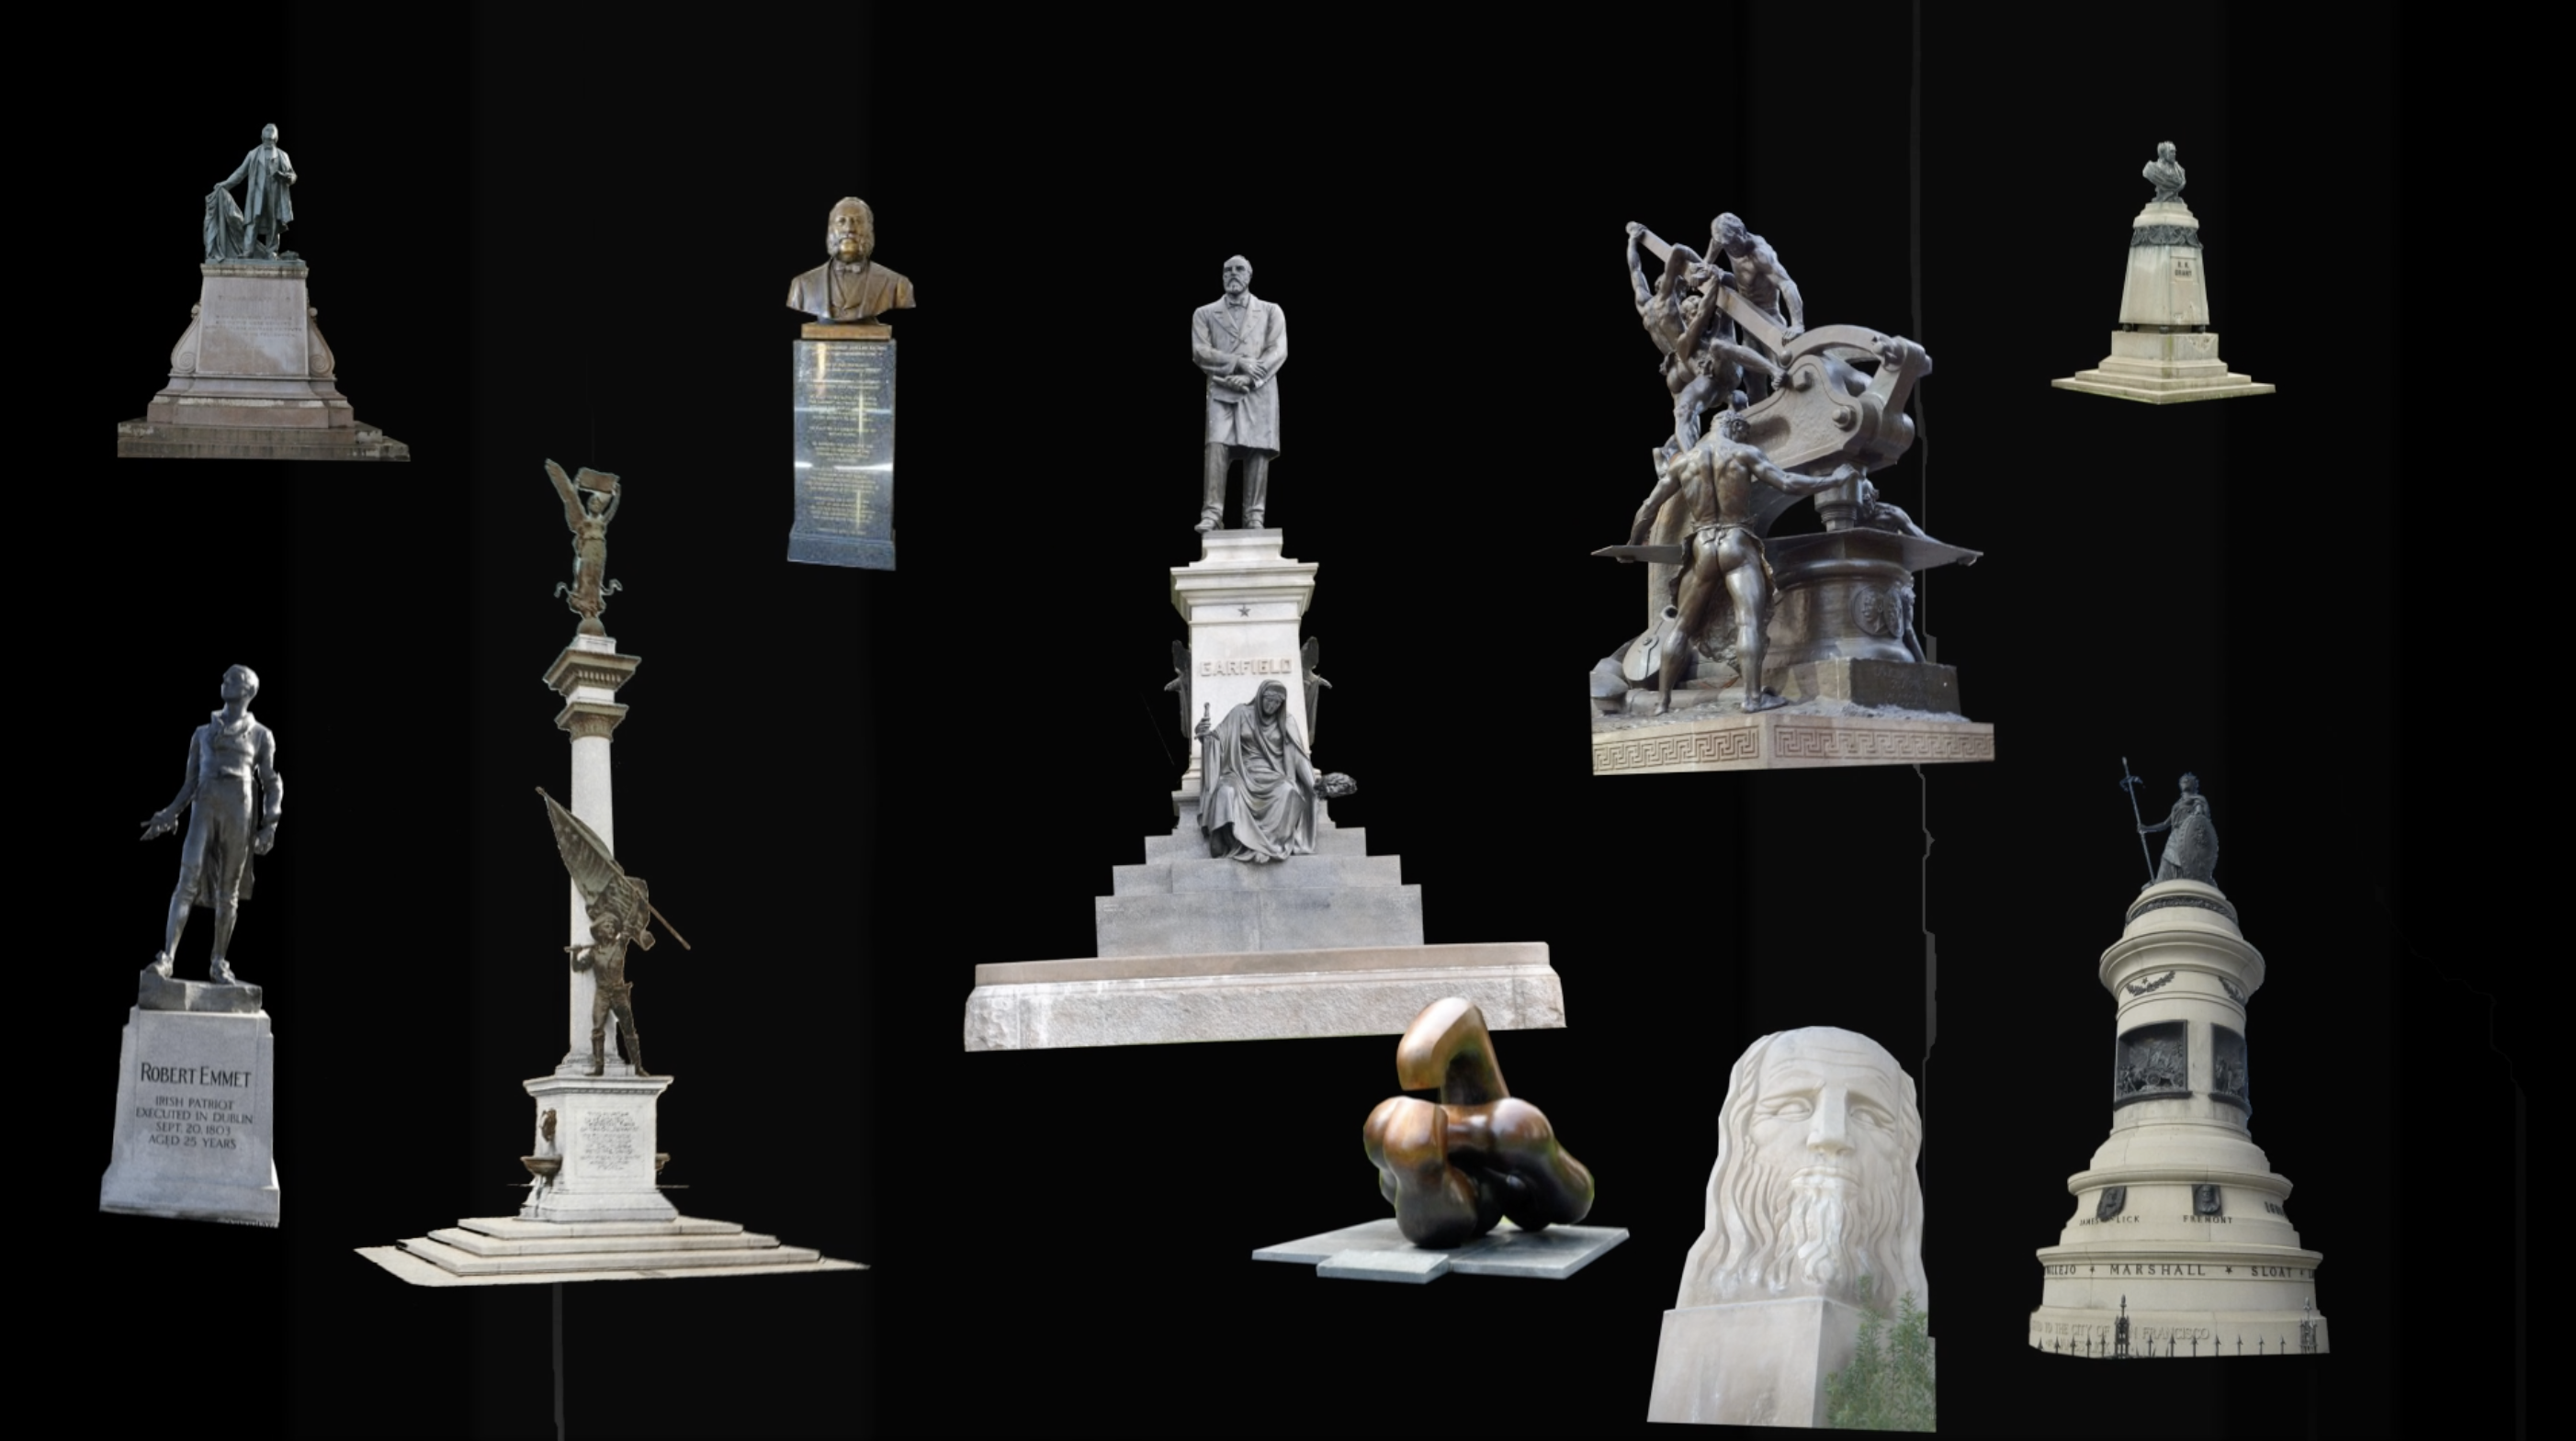 a collage of classical-looking monuments in front of a black background